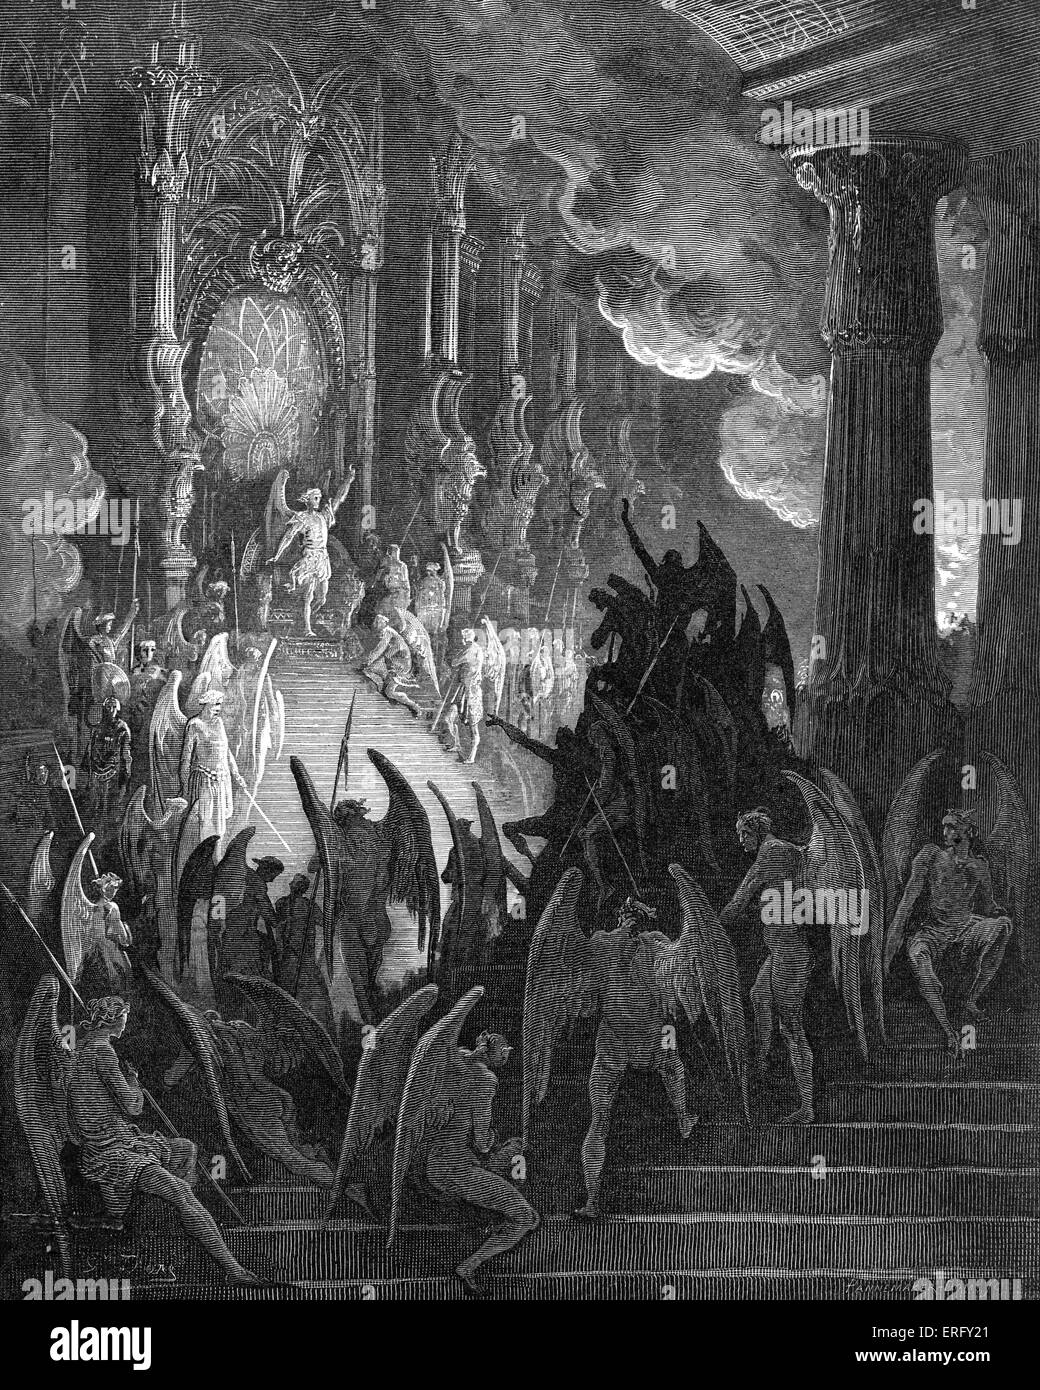 Paradise Lost, by John Milton: Satan in Council. Satan in his magnificent palace in Pandaemonium, the capital of - Stock Image